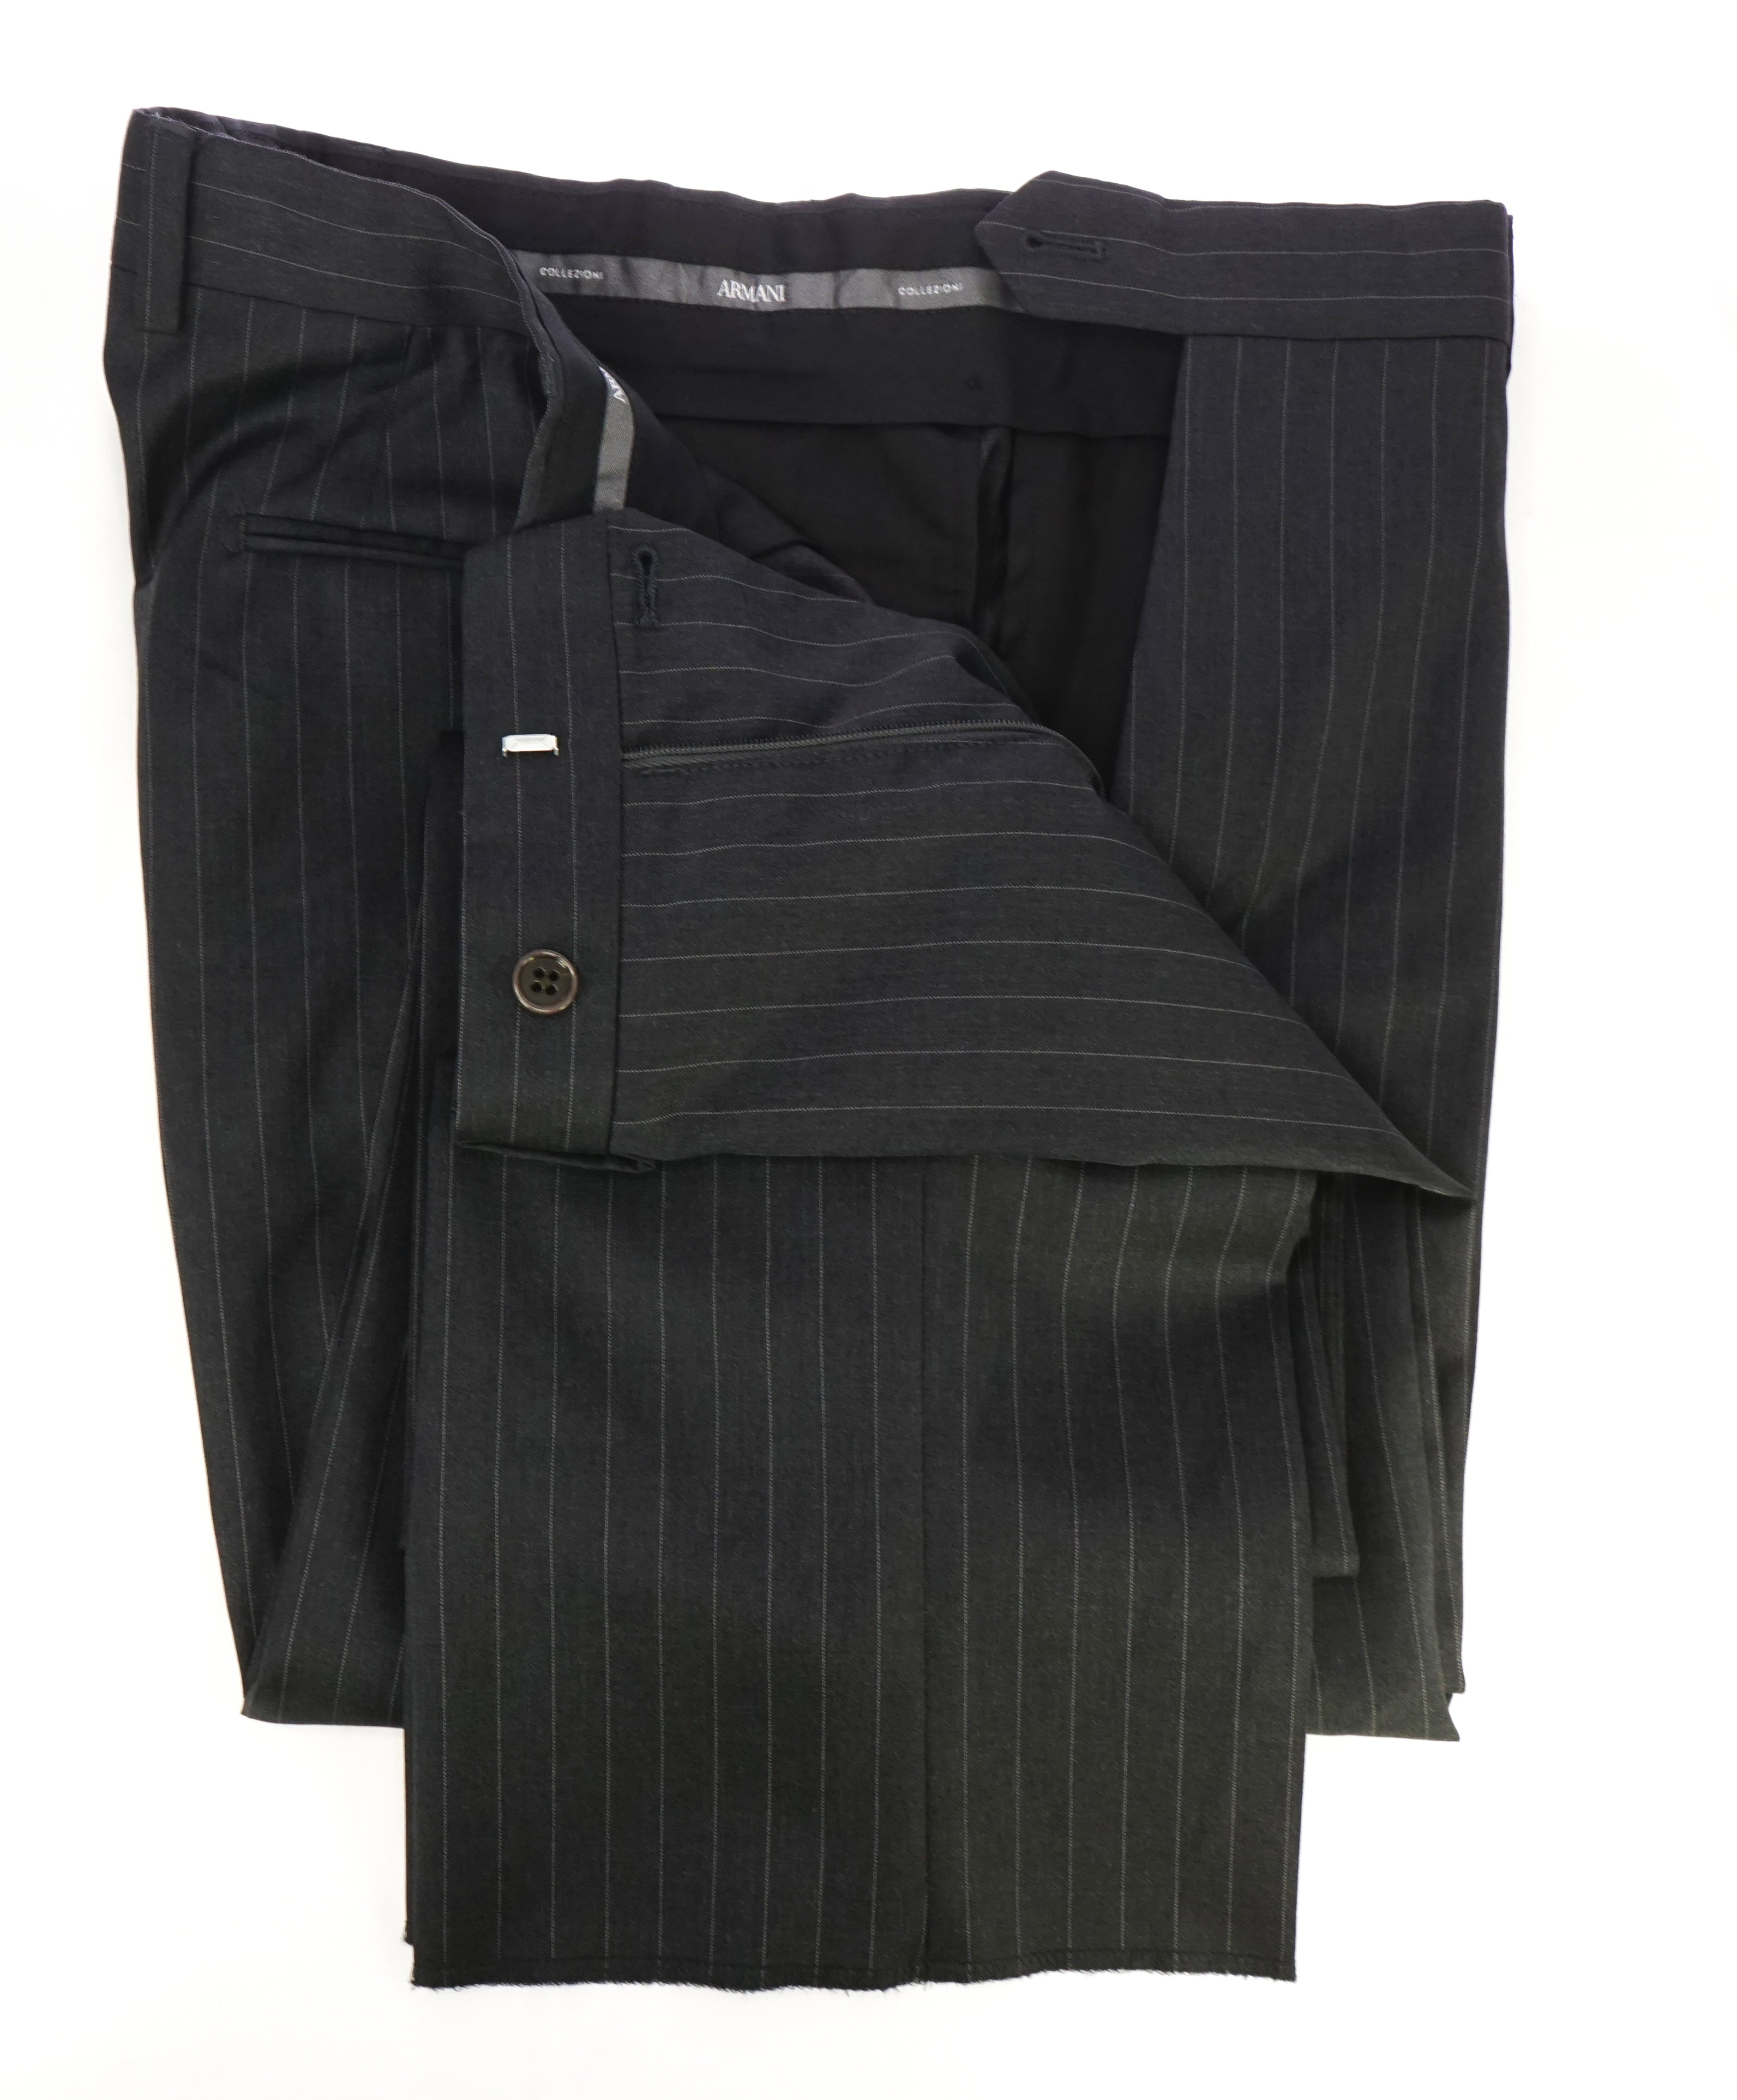 ARMANI COLLEZIONI - Gray Tonal Pin Stripe Flat Front Dress Pants - 33W